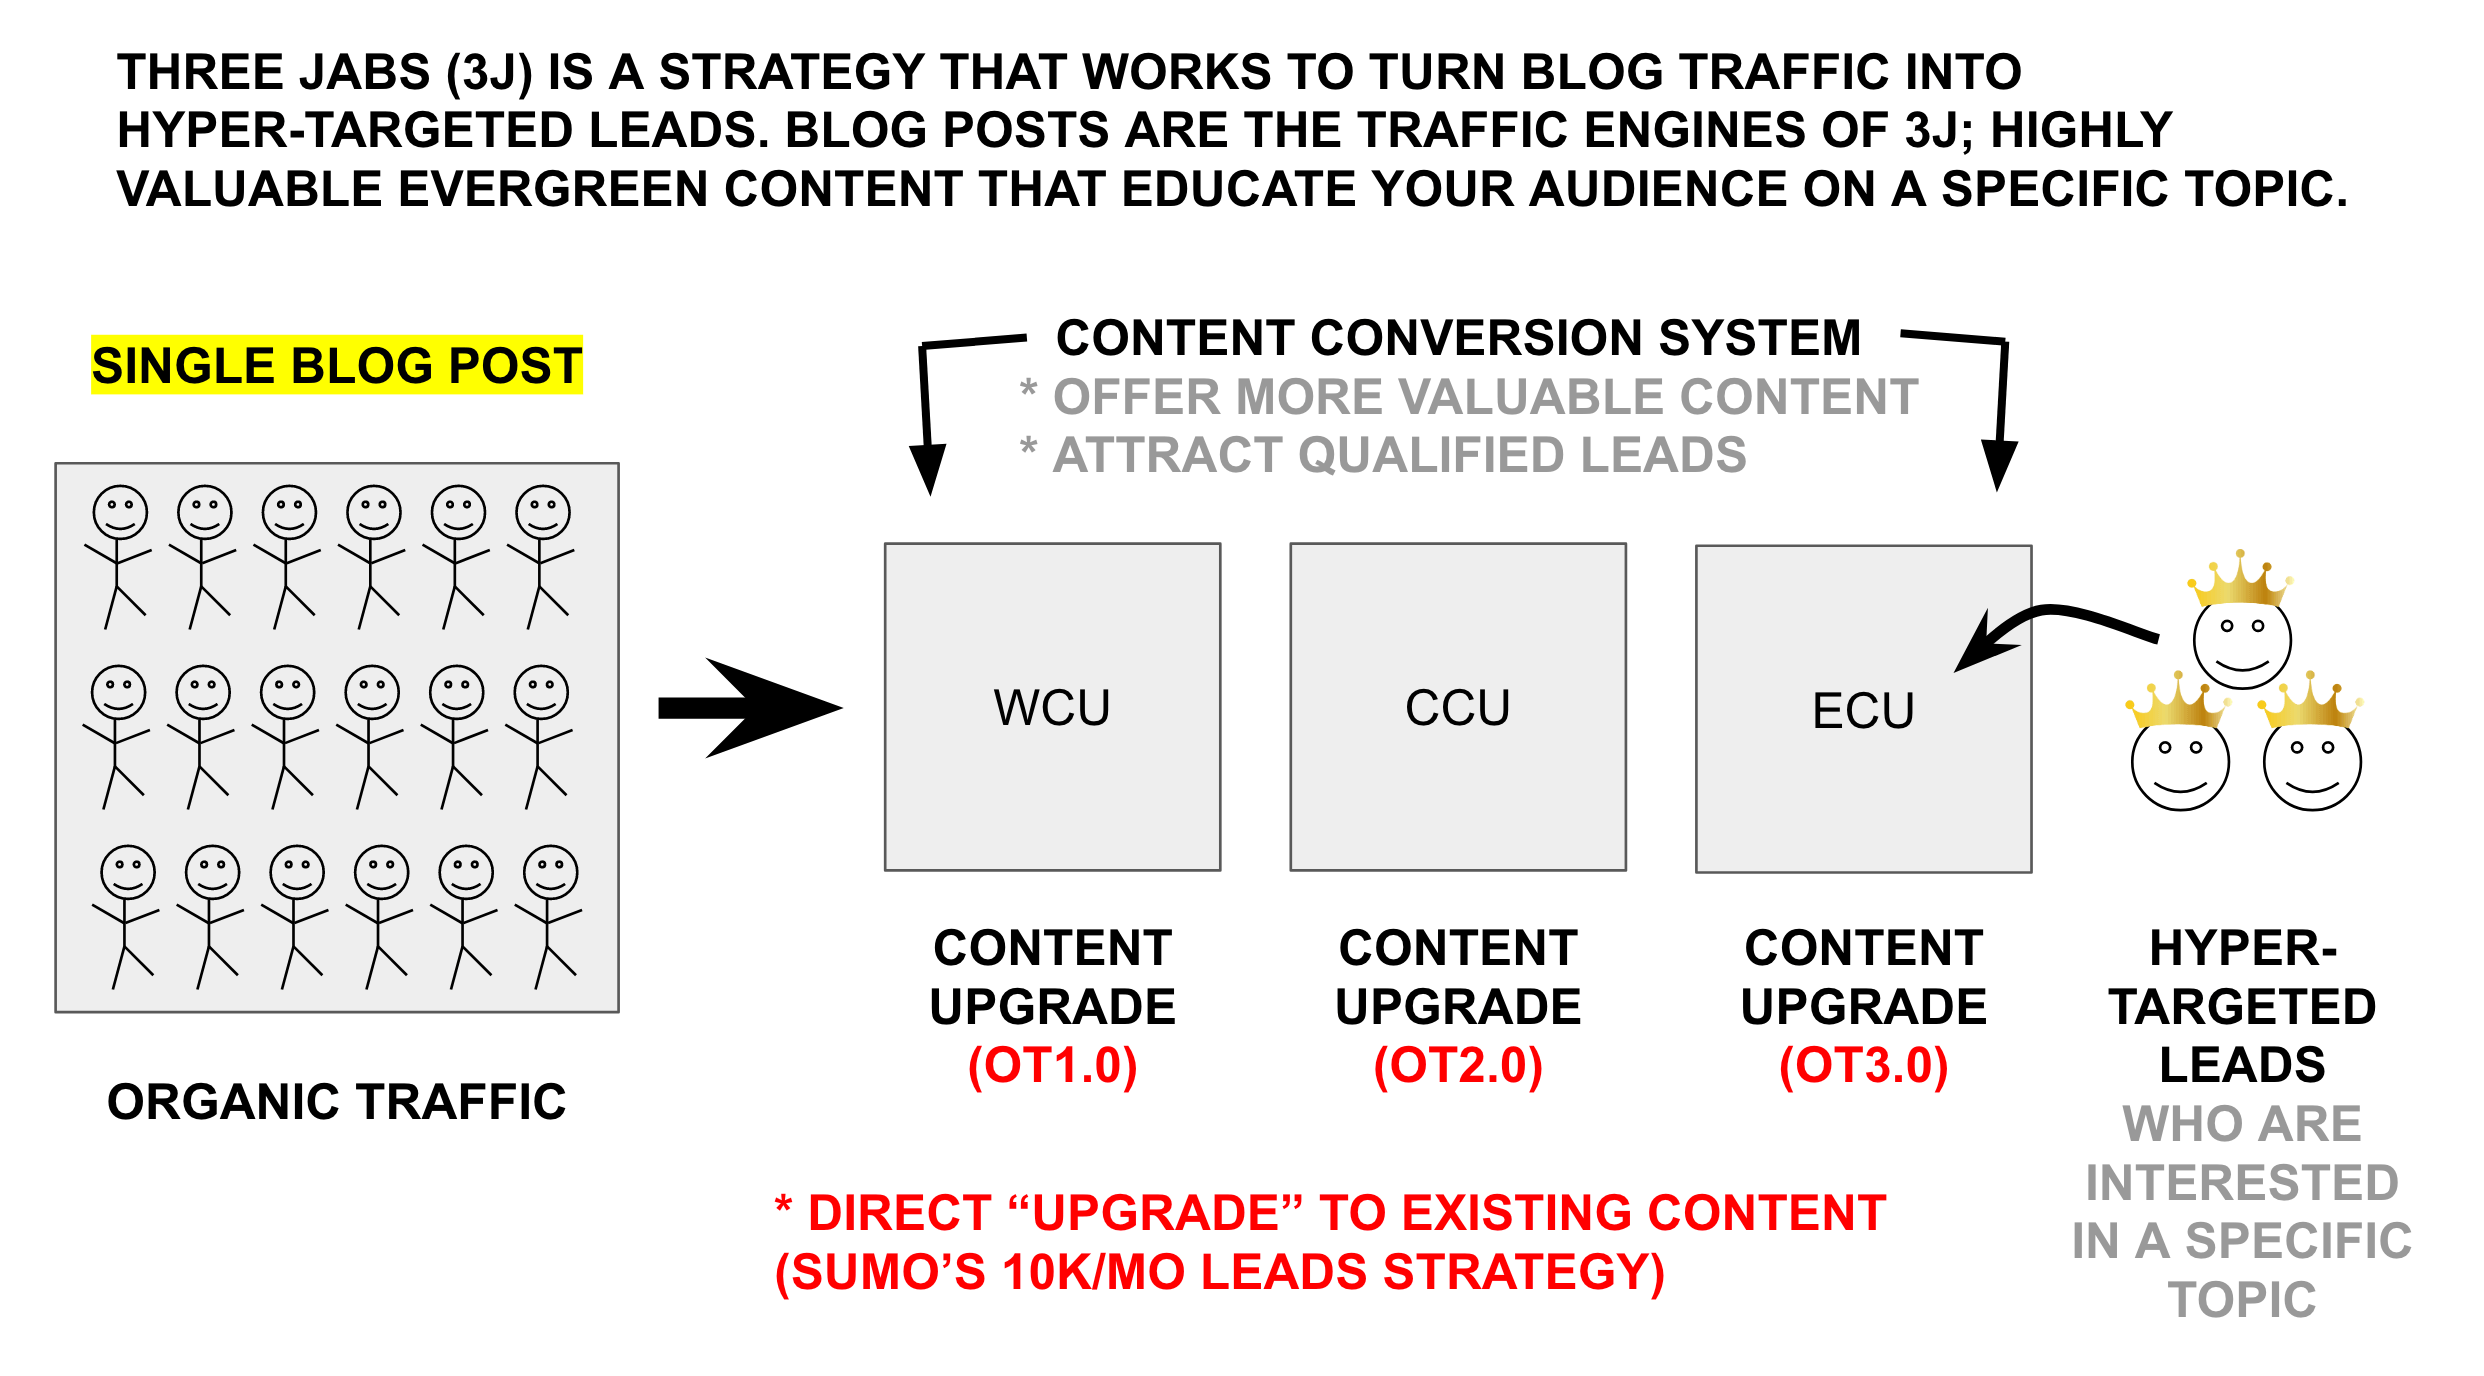 three jabs content strategy image